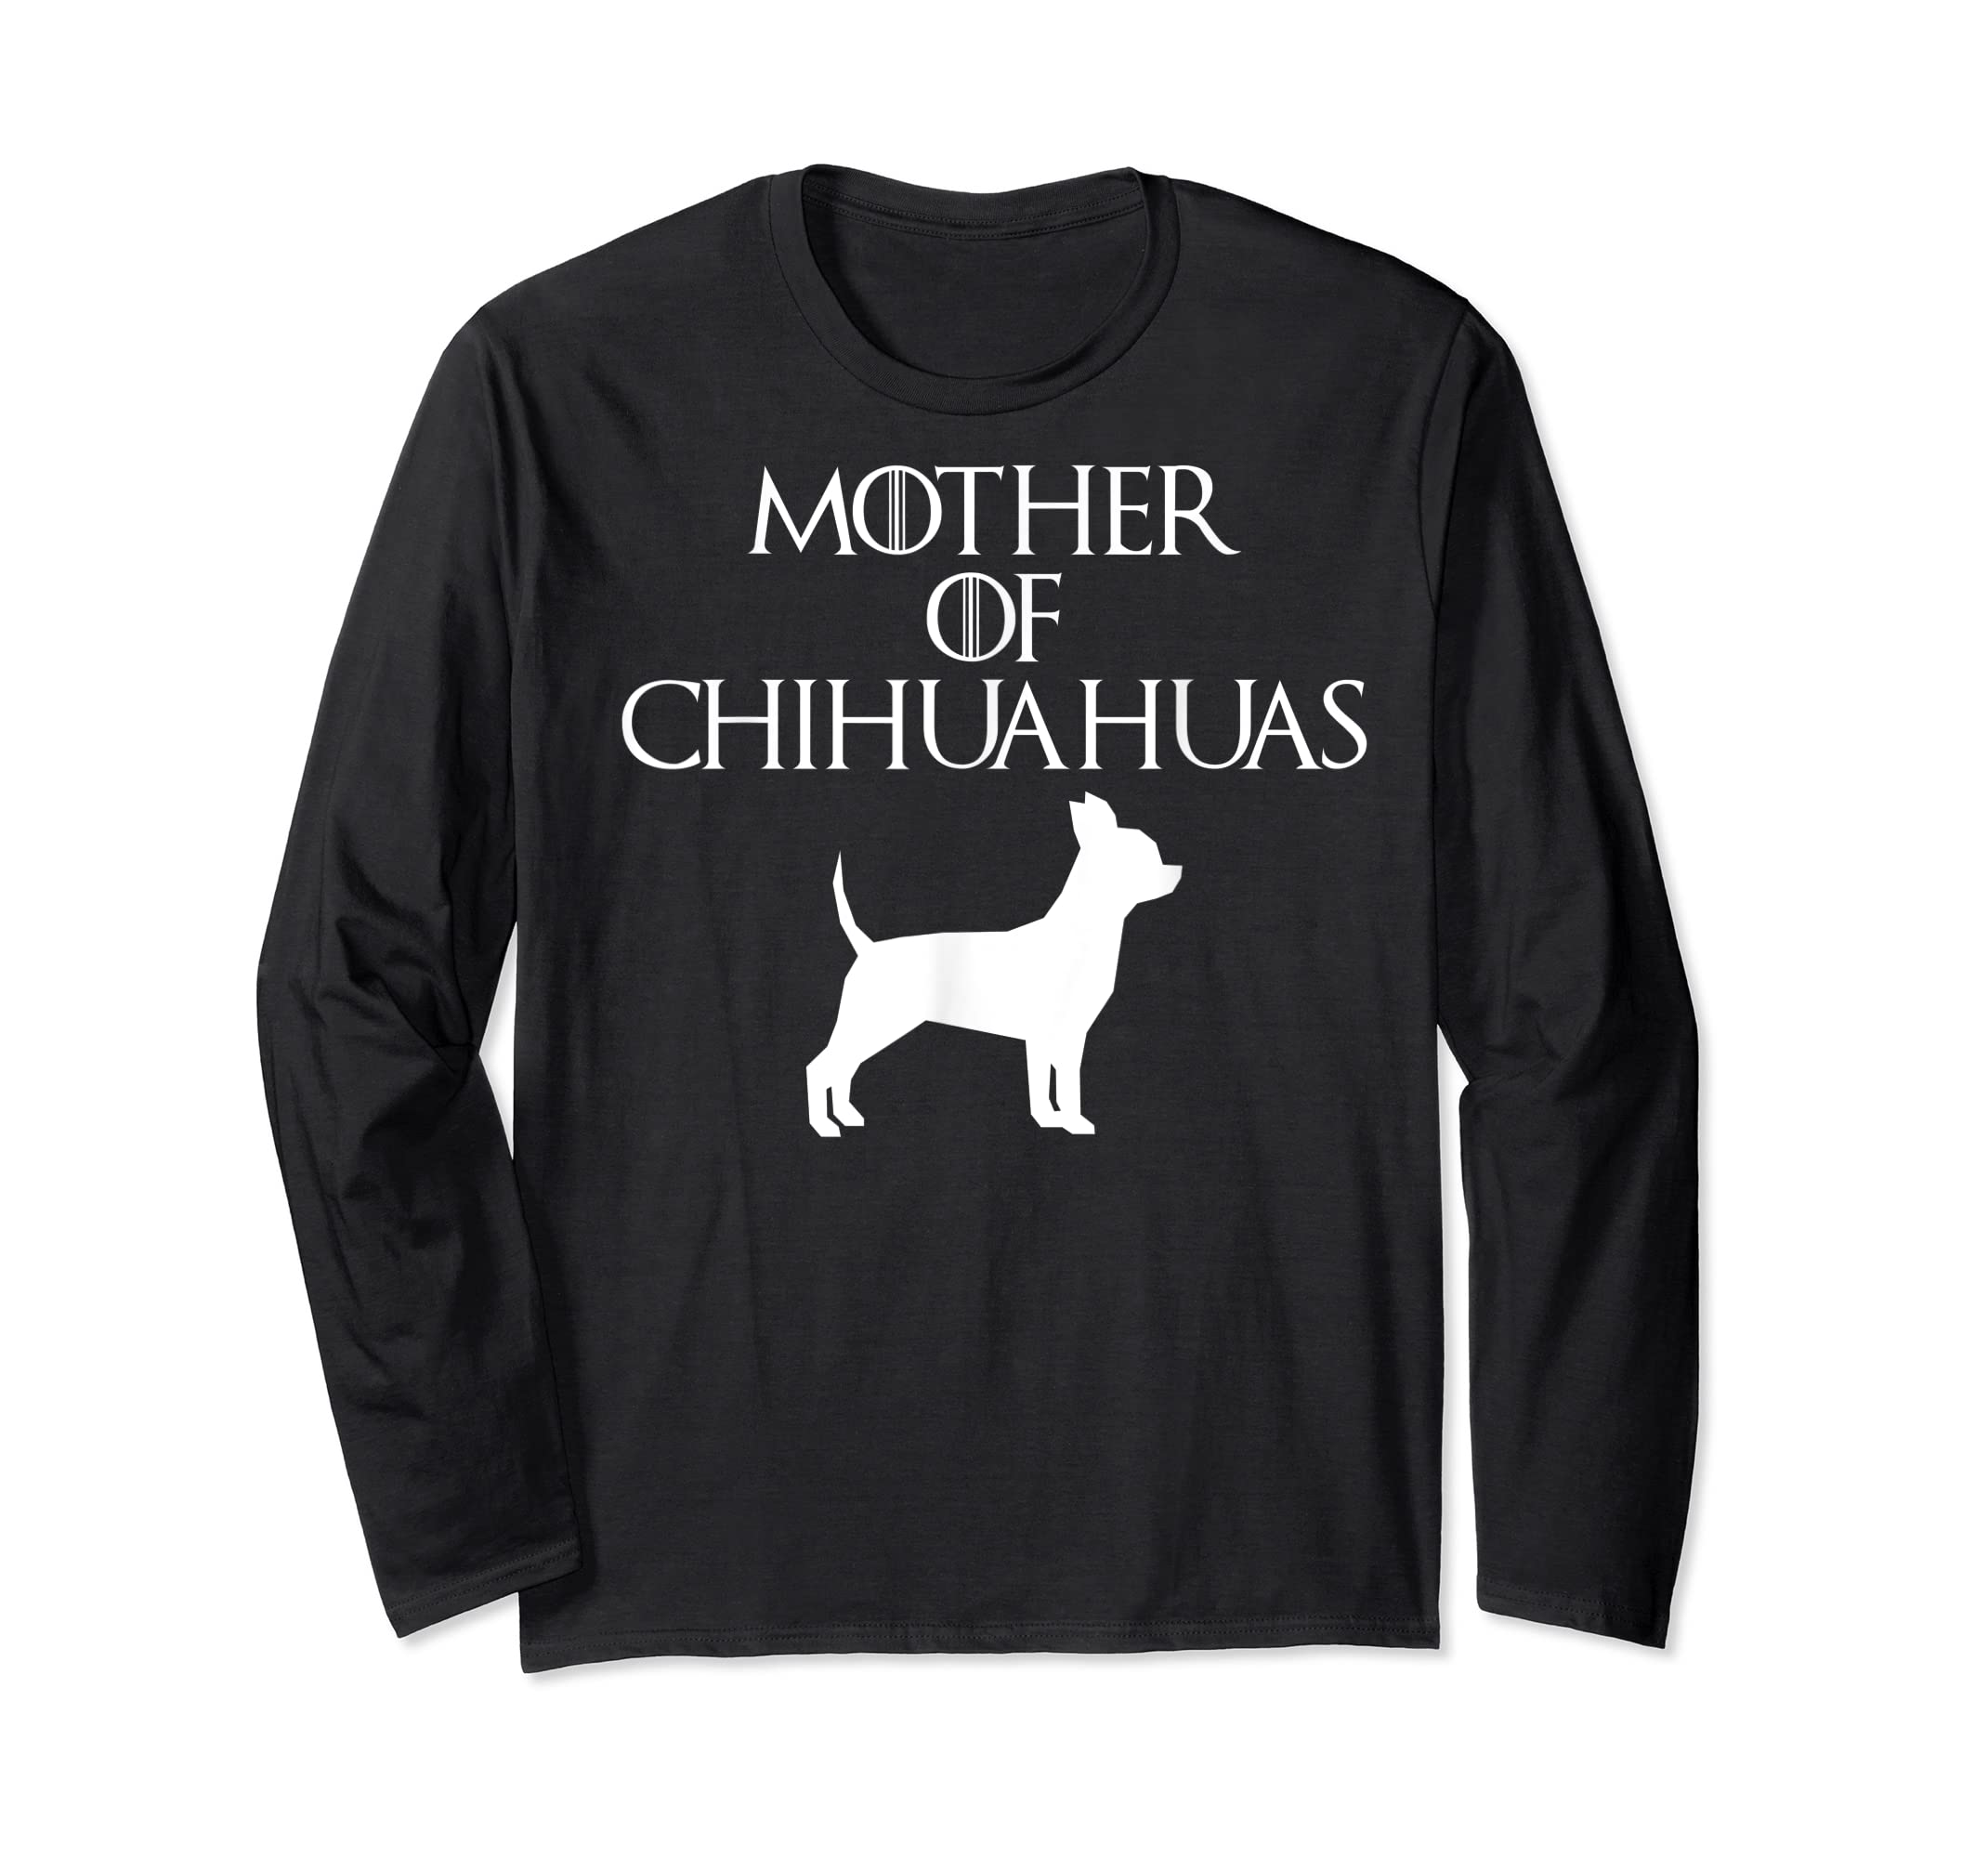 Cute & Unique White Mother of Chihuahuas T-shirt E010608-Long Sleeve-Black